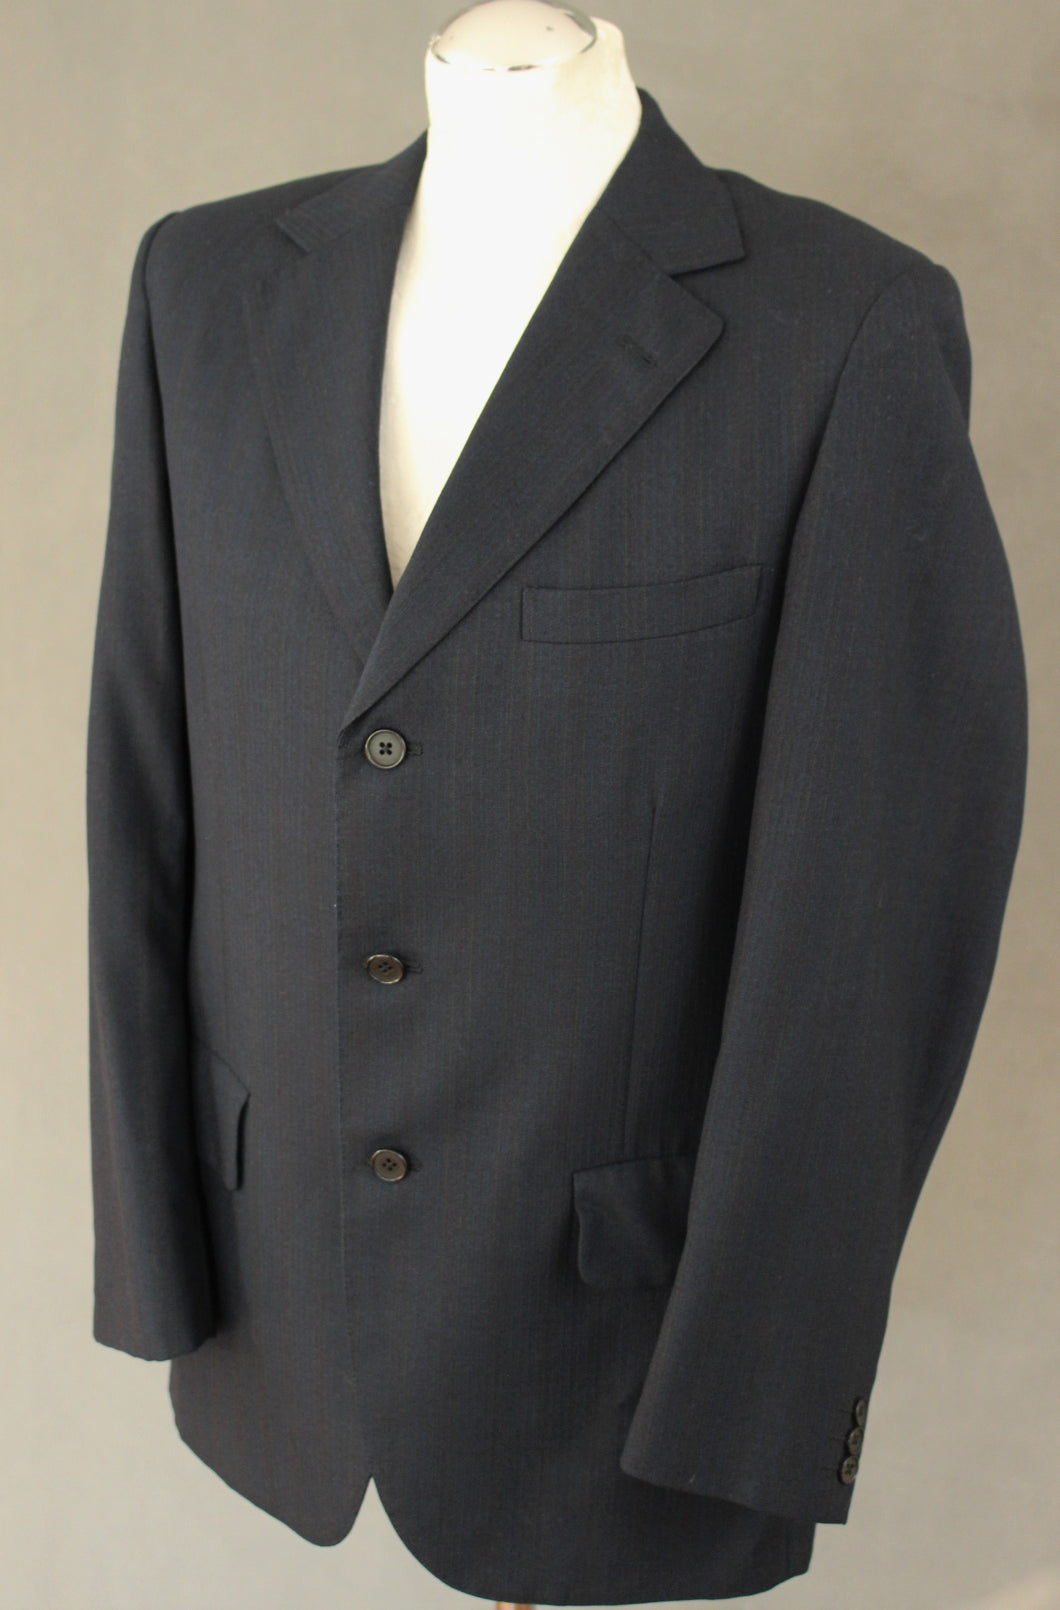 AQUASCUTUM Mens Dark Navy 2 PIECE SUIT Size 38R 38